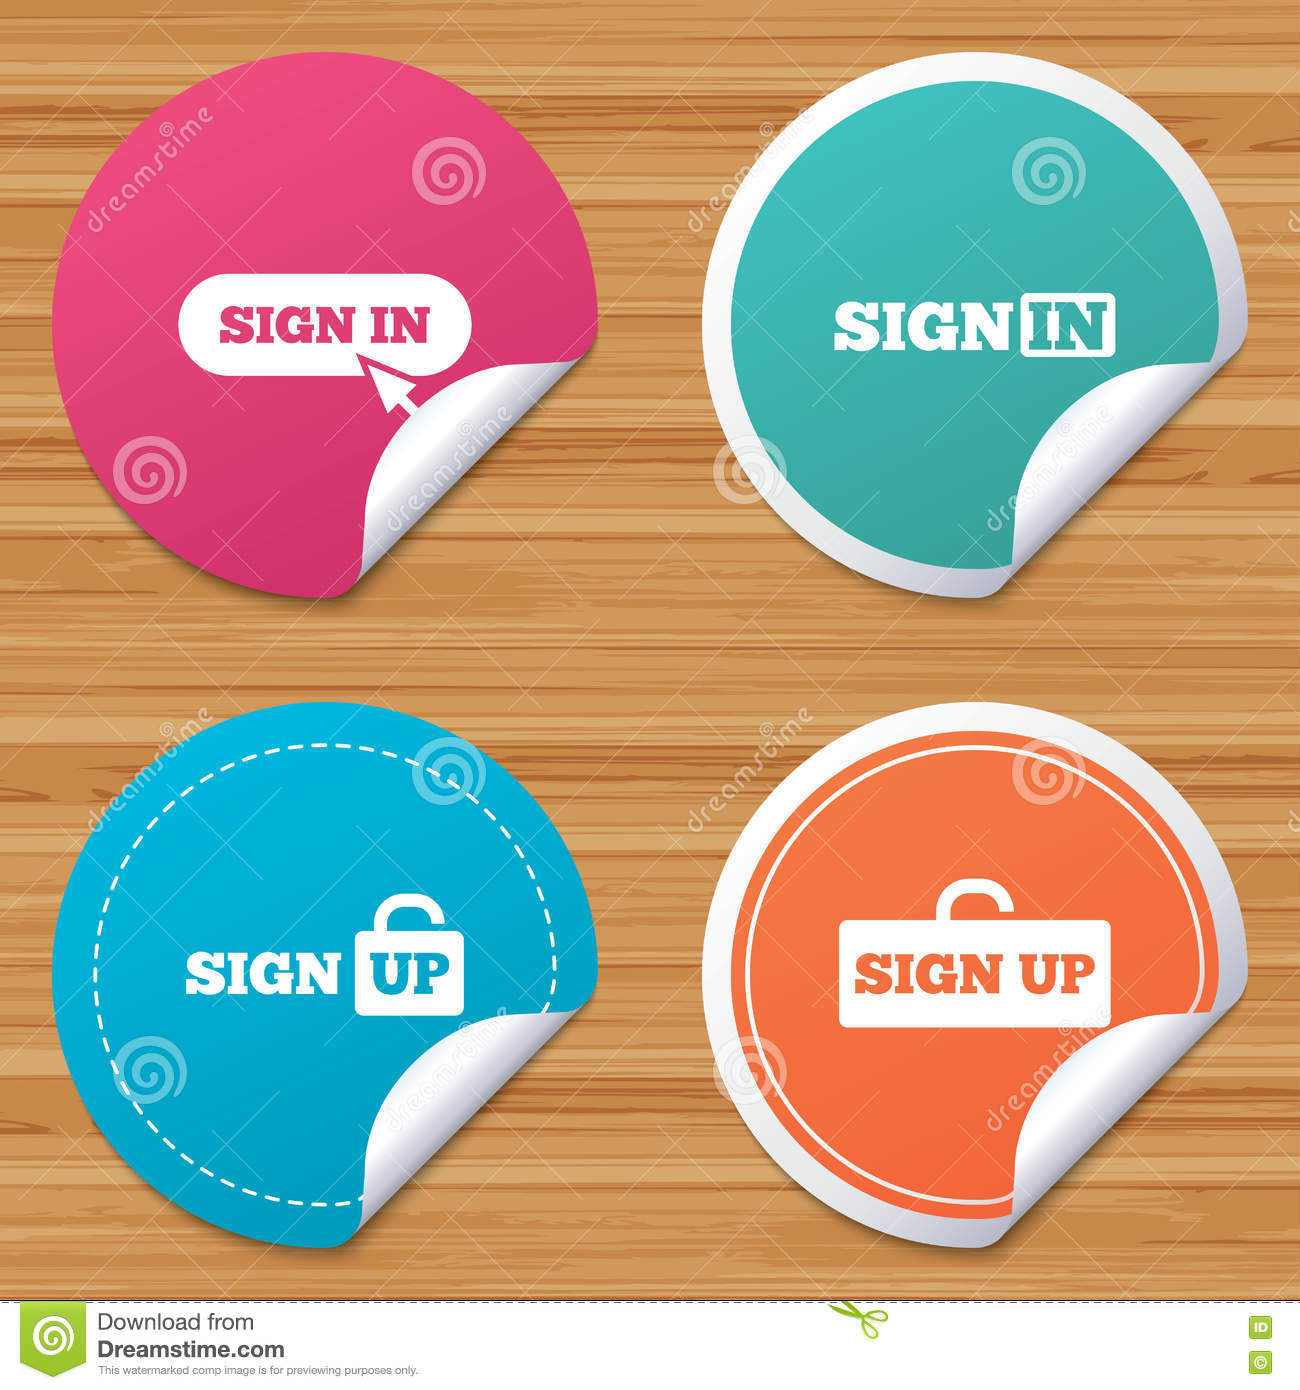 Login Banners India Digital Banners